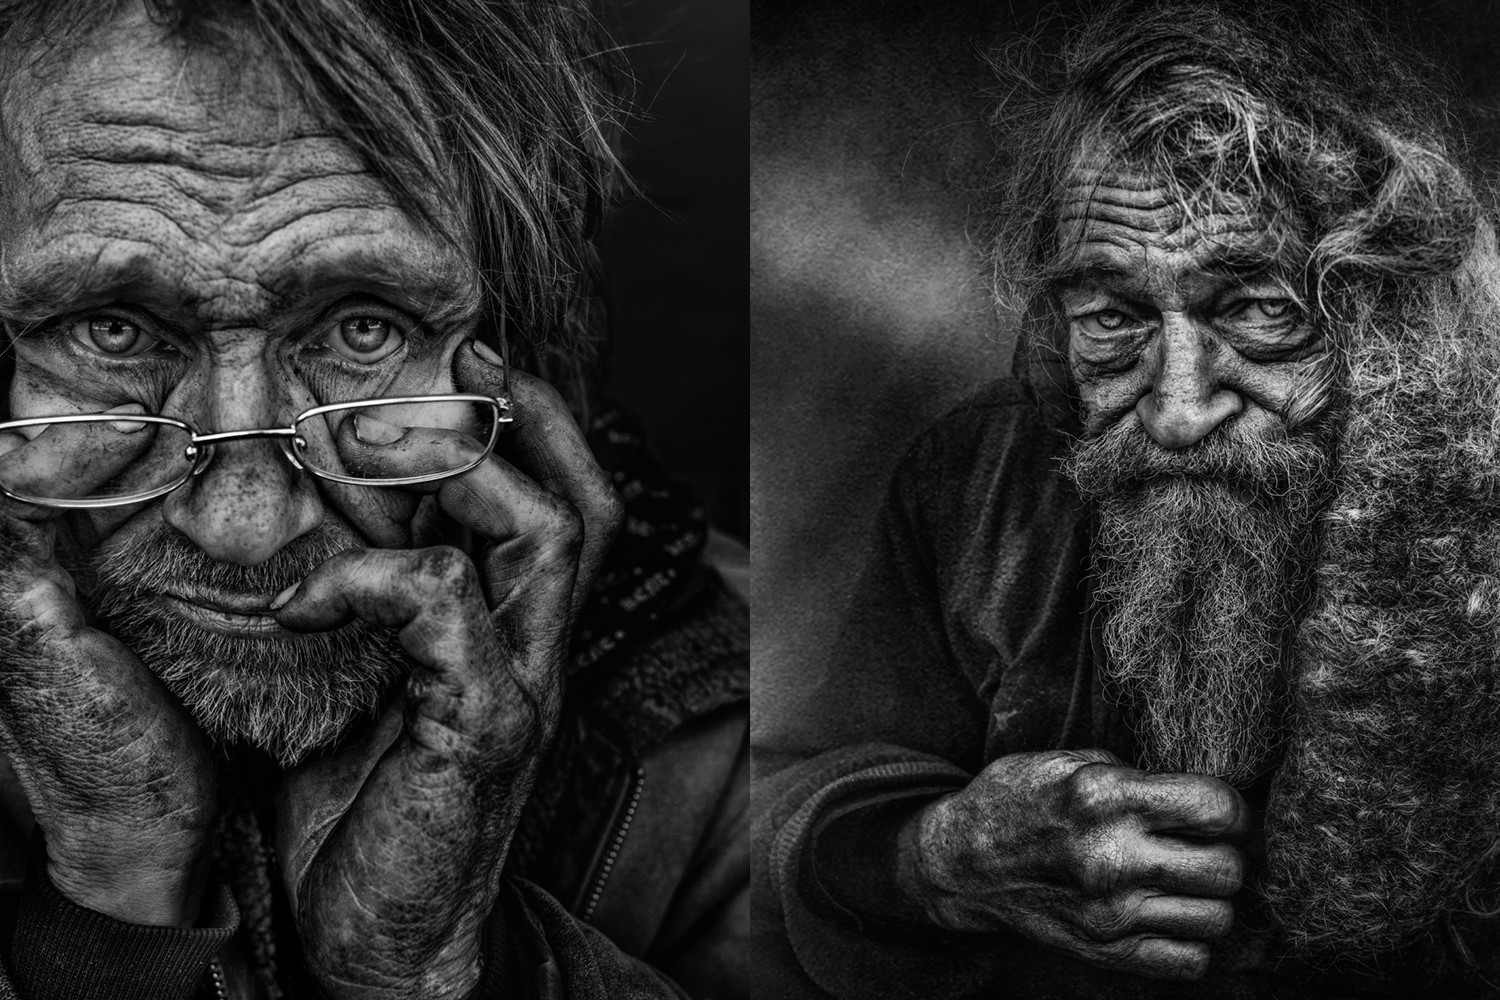 These Powerful Portraits are Raising Awareness and Aid for Sweden's Homeless